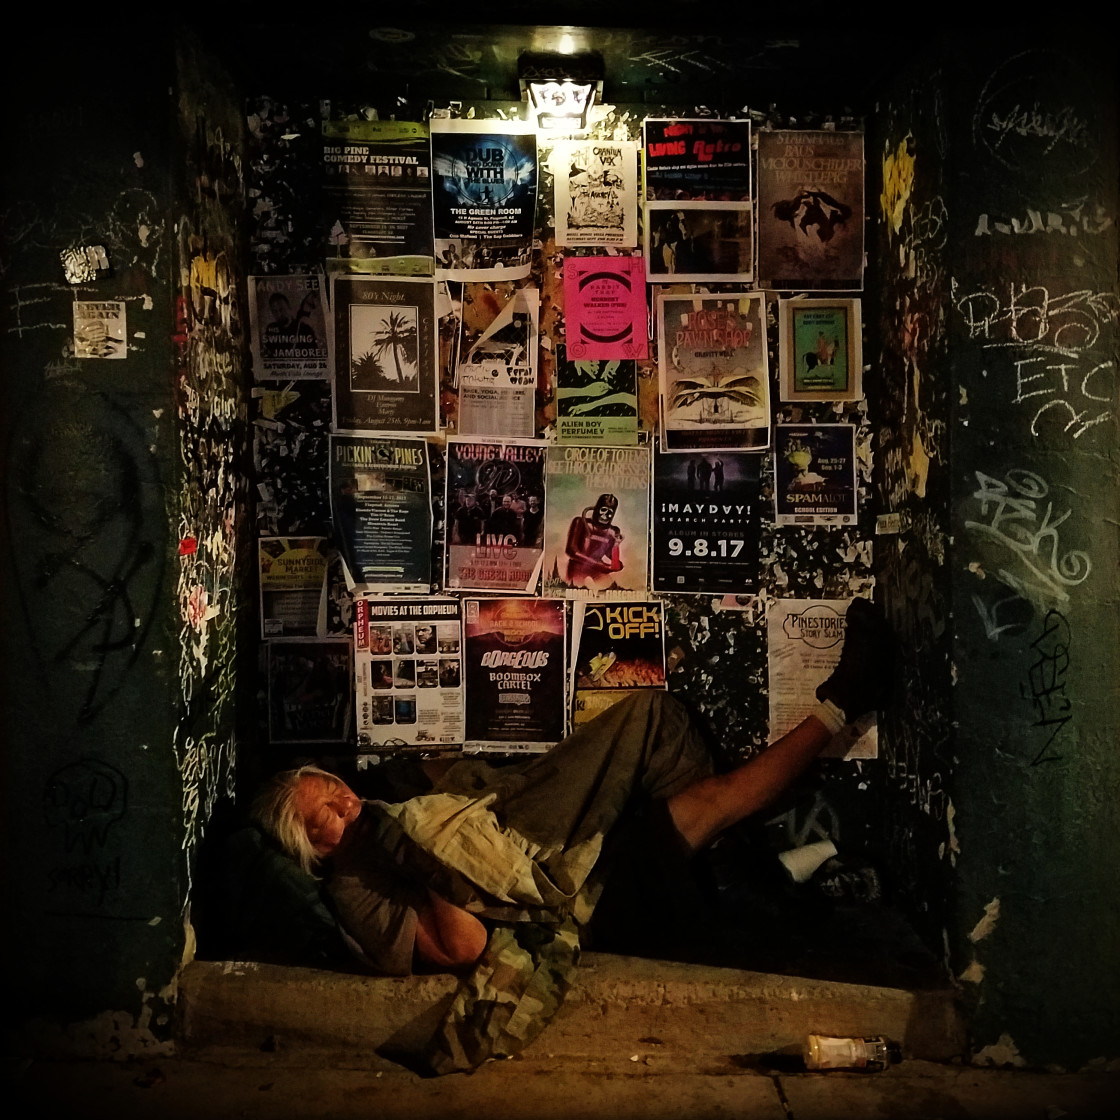 """A homeless man sleeps on the streets in an alcove amidst band flyers and graffiti."" stock image"